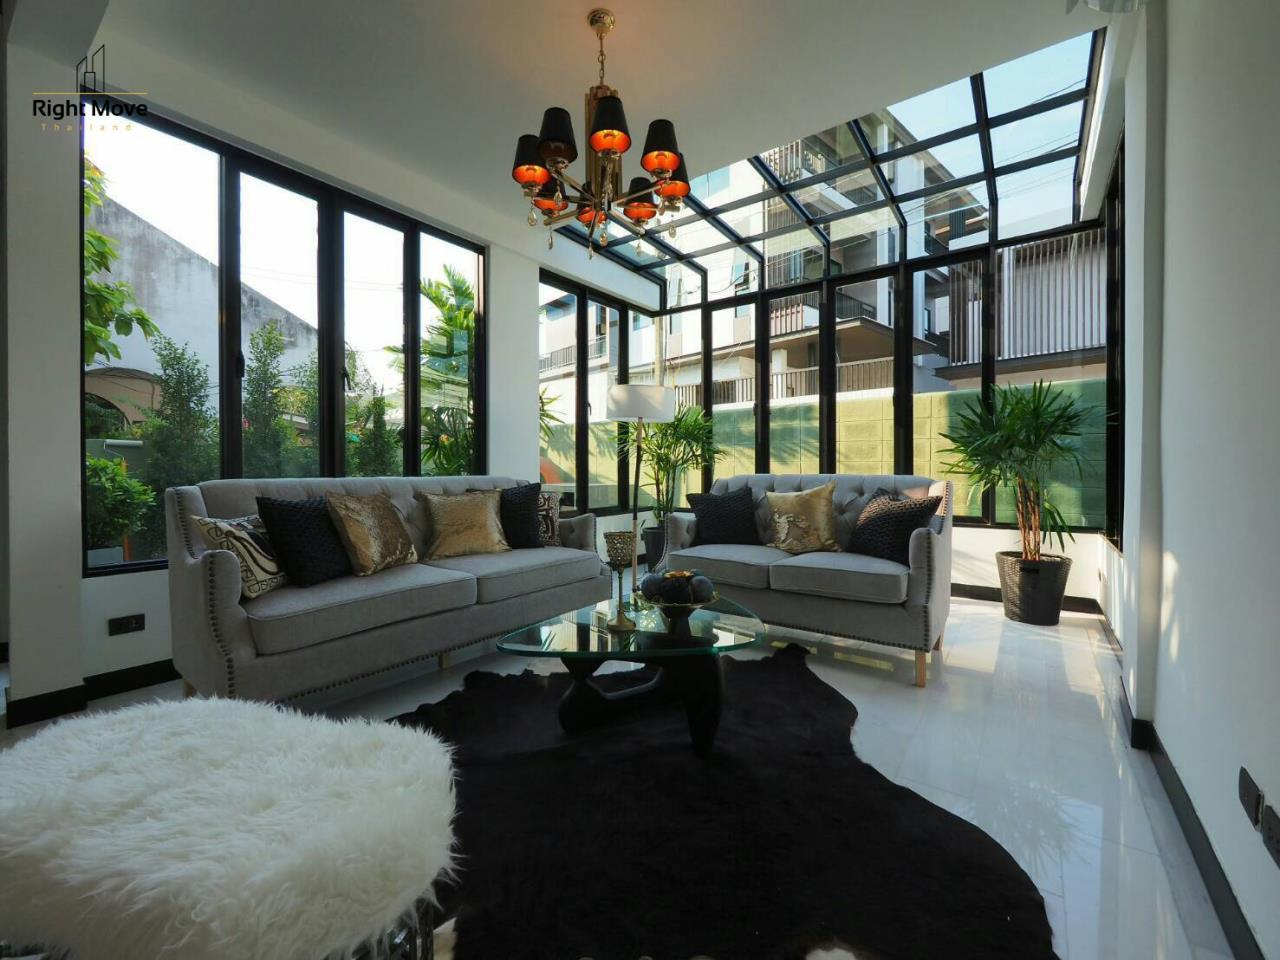 Right Move Thailand Agency's HR874 Single House For Sale 16,500,000 THB 2 Bedrooms 150 Sqm 4